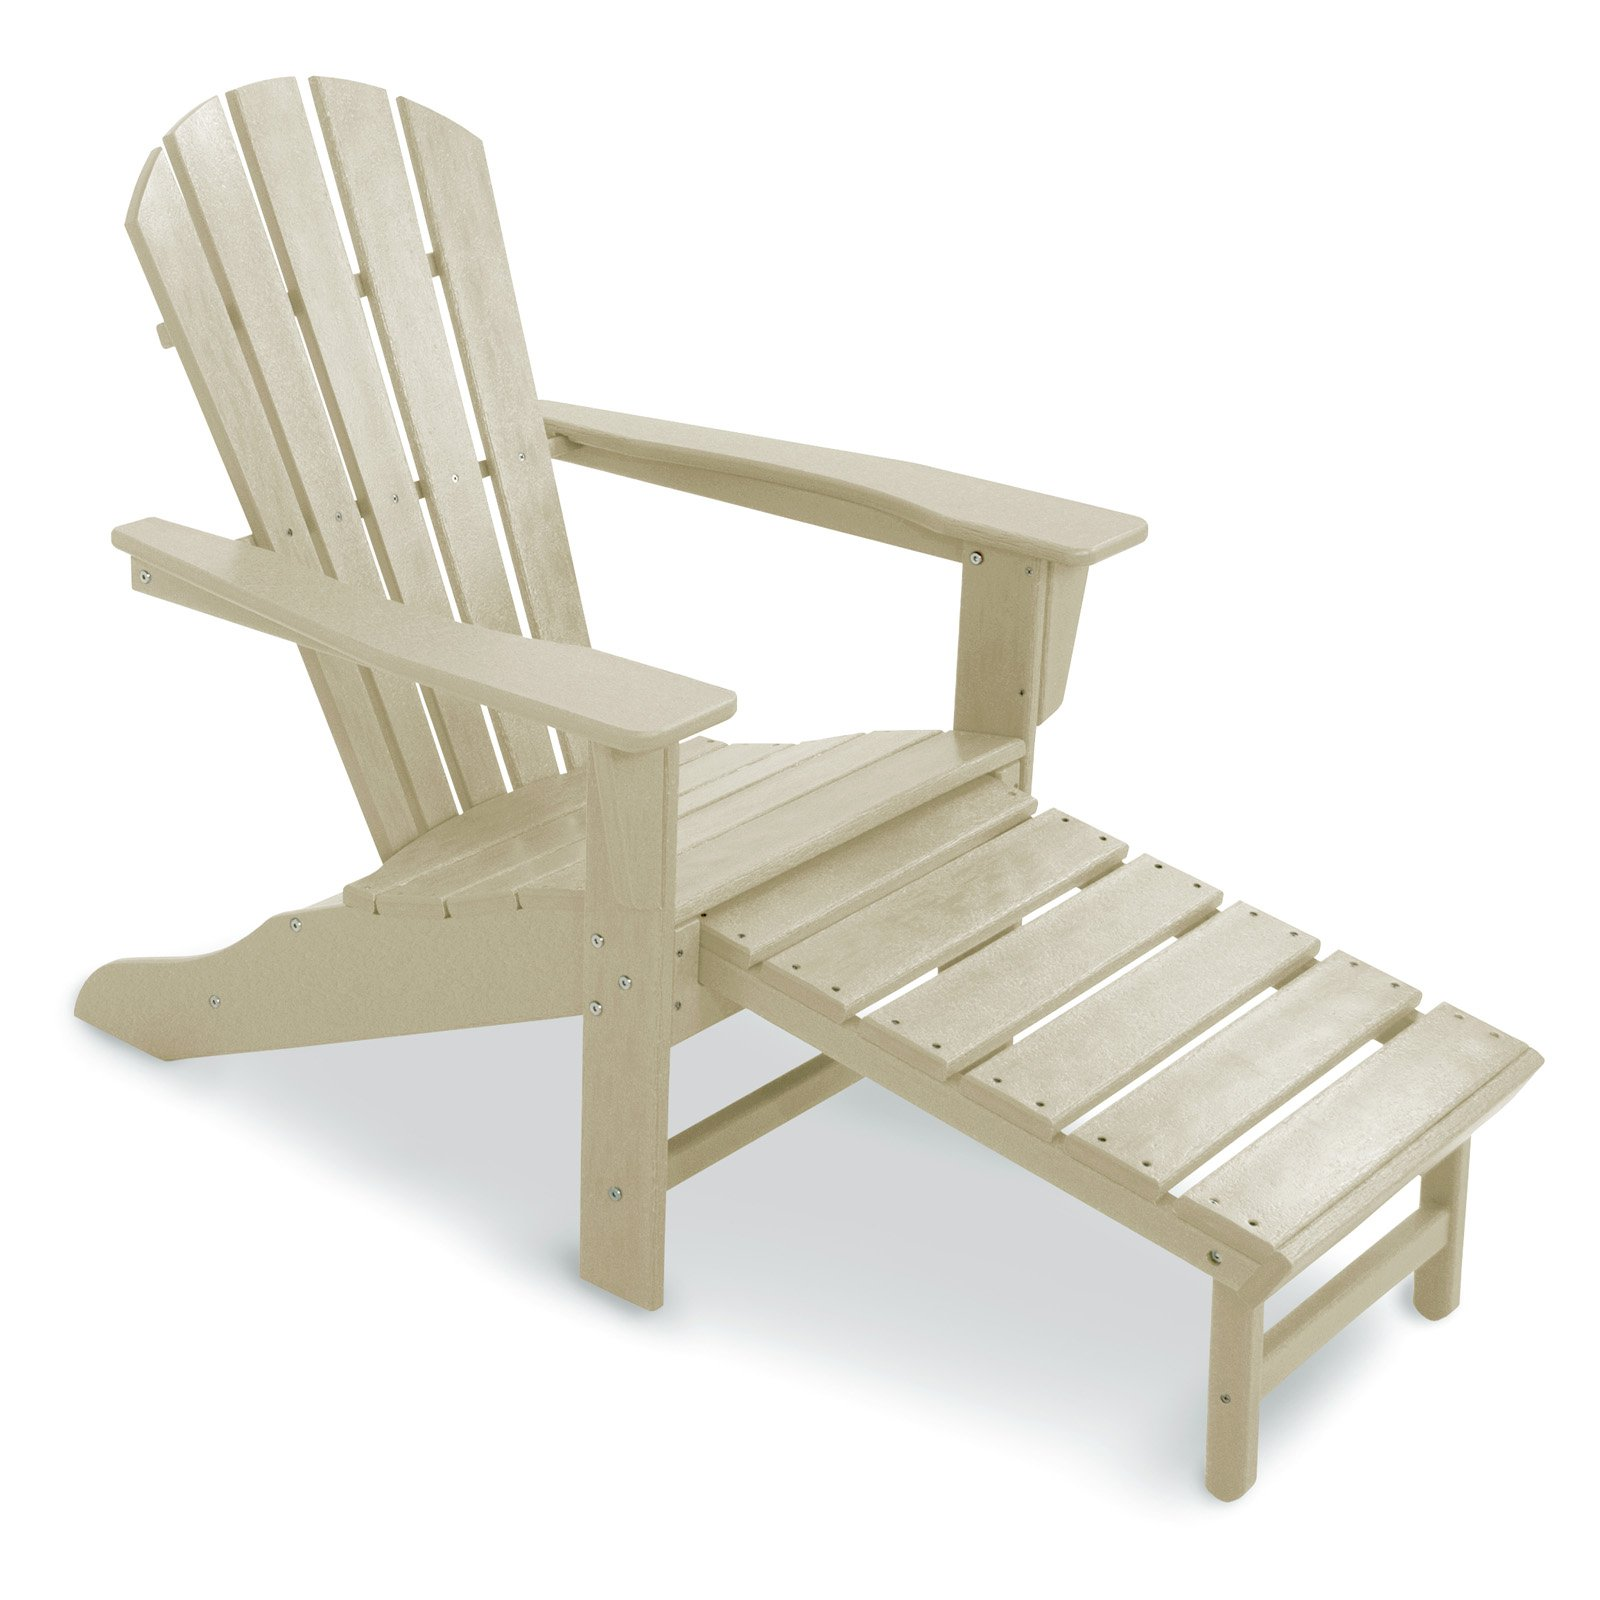 POLYWOODu0026reg; Recycled Plastic Big Daddy Adirondack Chair With Pull Out  Ottoman